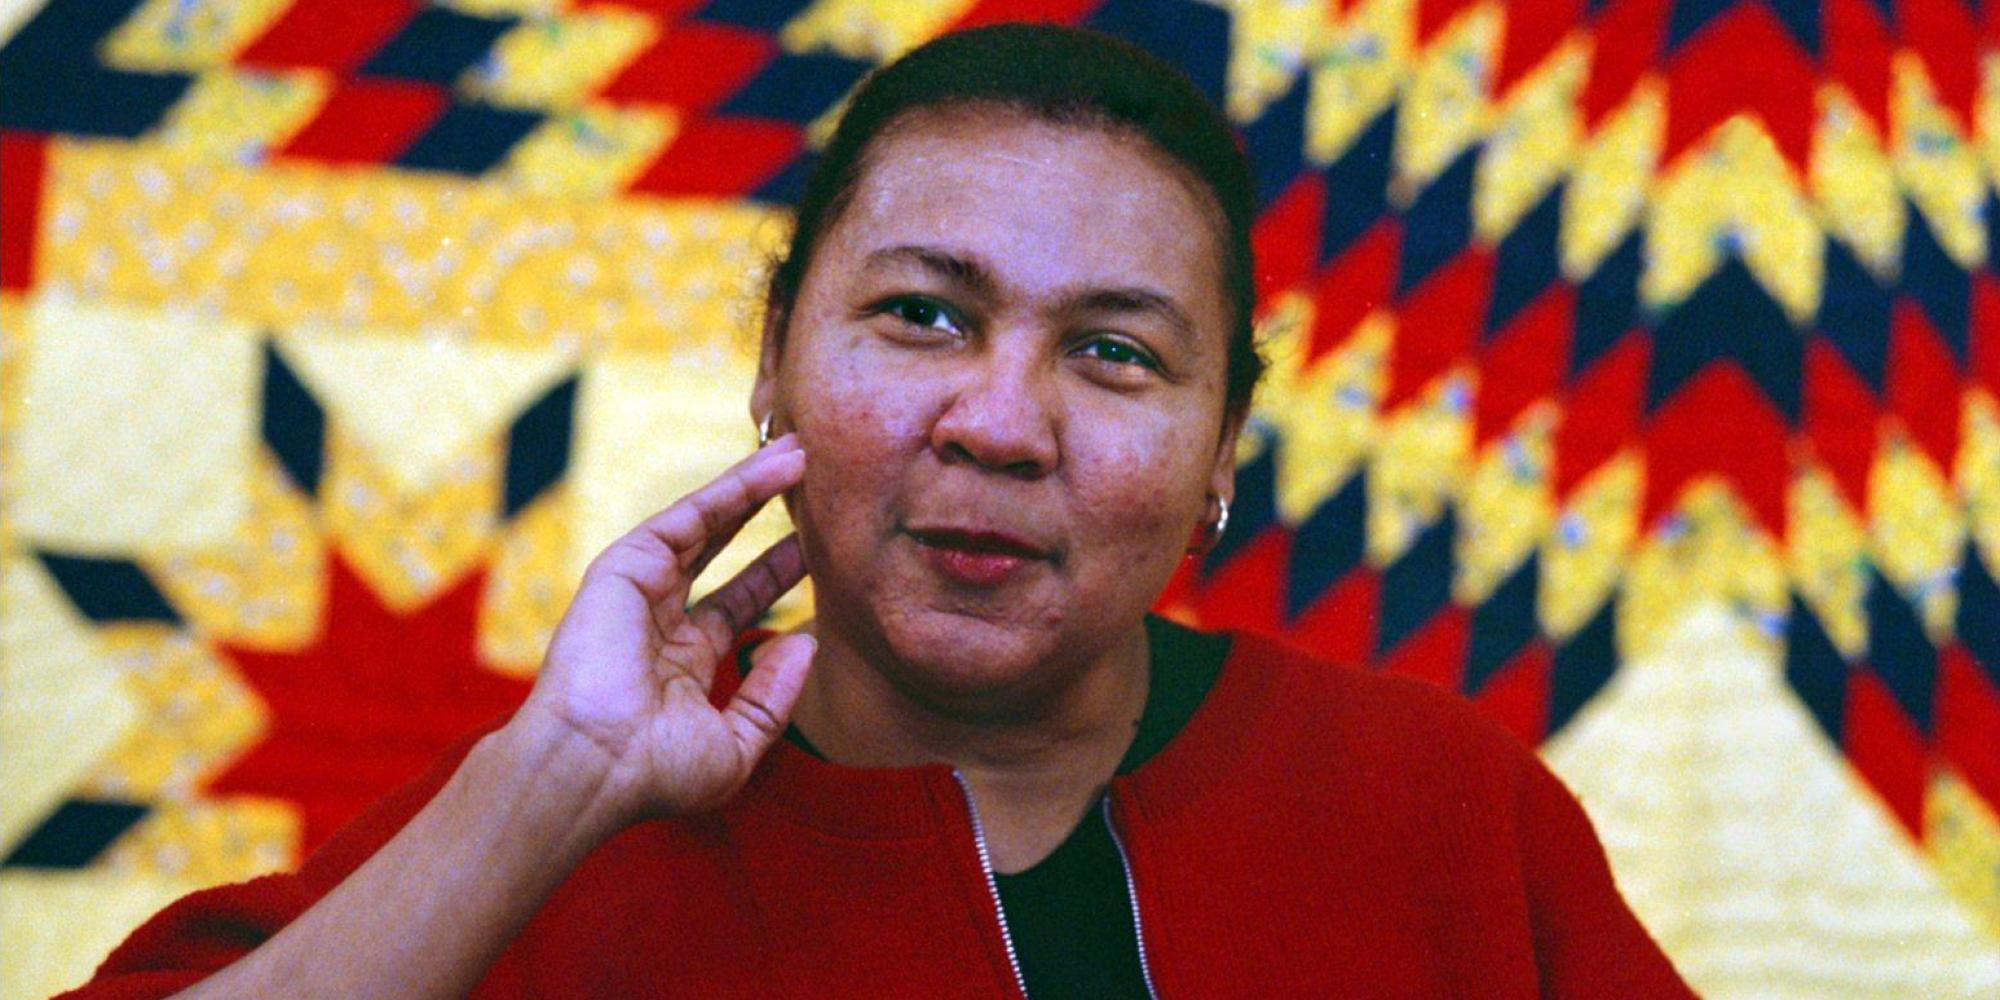 bell hooks keeping close to home class and education Contents: introduction bell hooks on education hooks and freire  she came  from a poor working class family and worked her way up the academic ladder to   but to learn ideas that ran counter to values and beliefs learned at home was to .